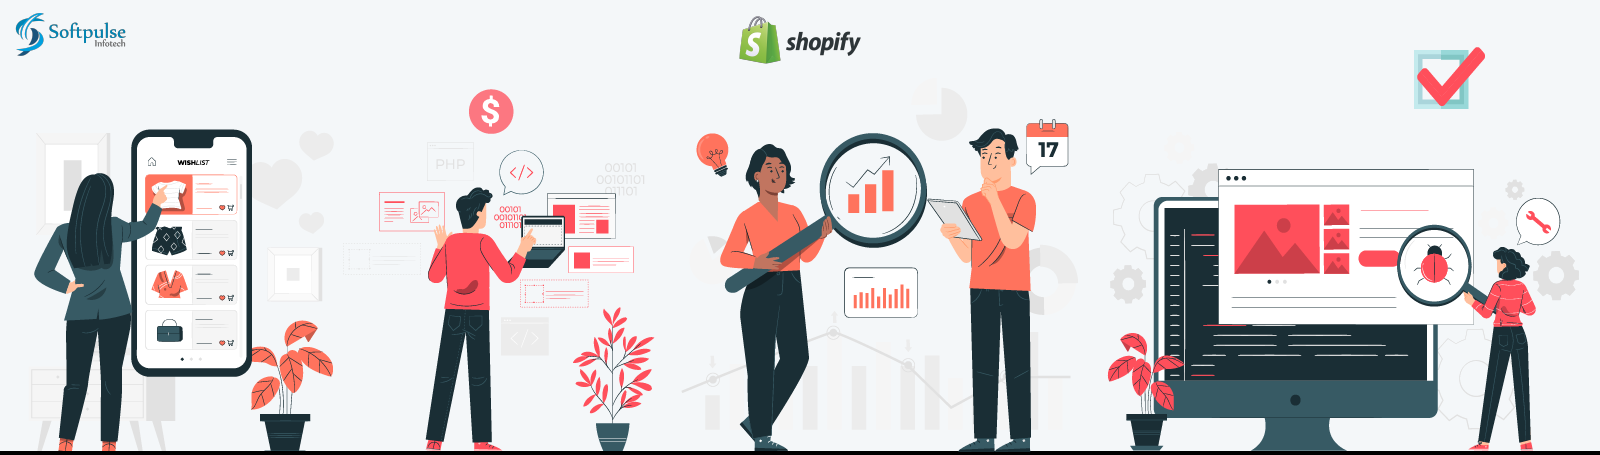 Shopify Unite 2021 All Of The Key Announcements